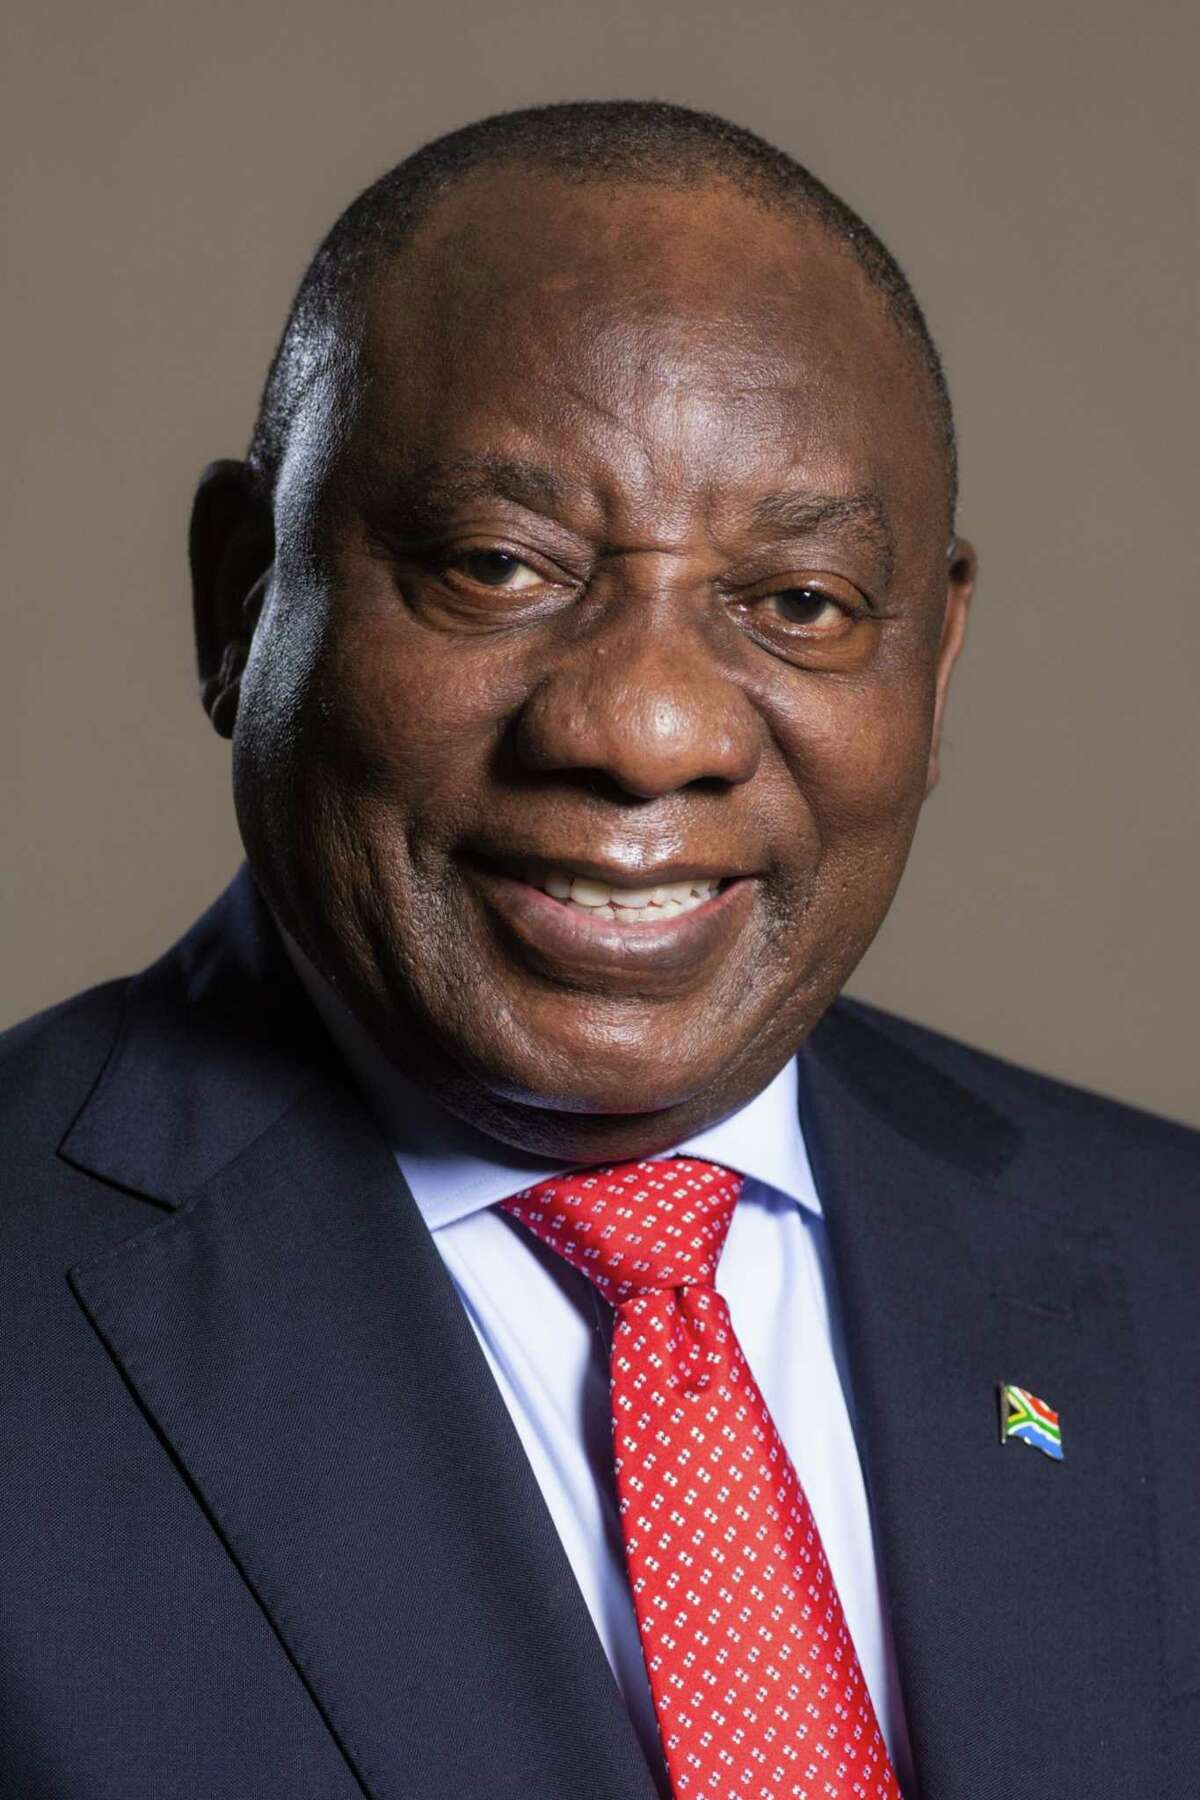 Cyril Ramaphosa, South Africa's president, following a Bloomberg Television interview in Johannesburg on Nov. 18, 2020.